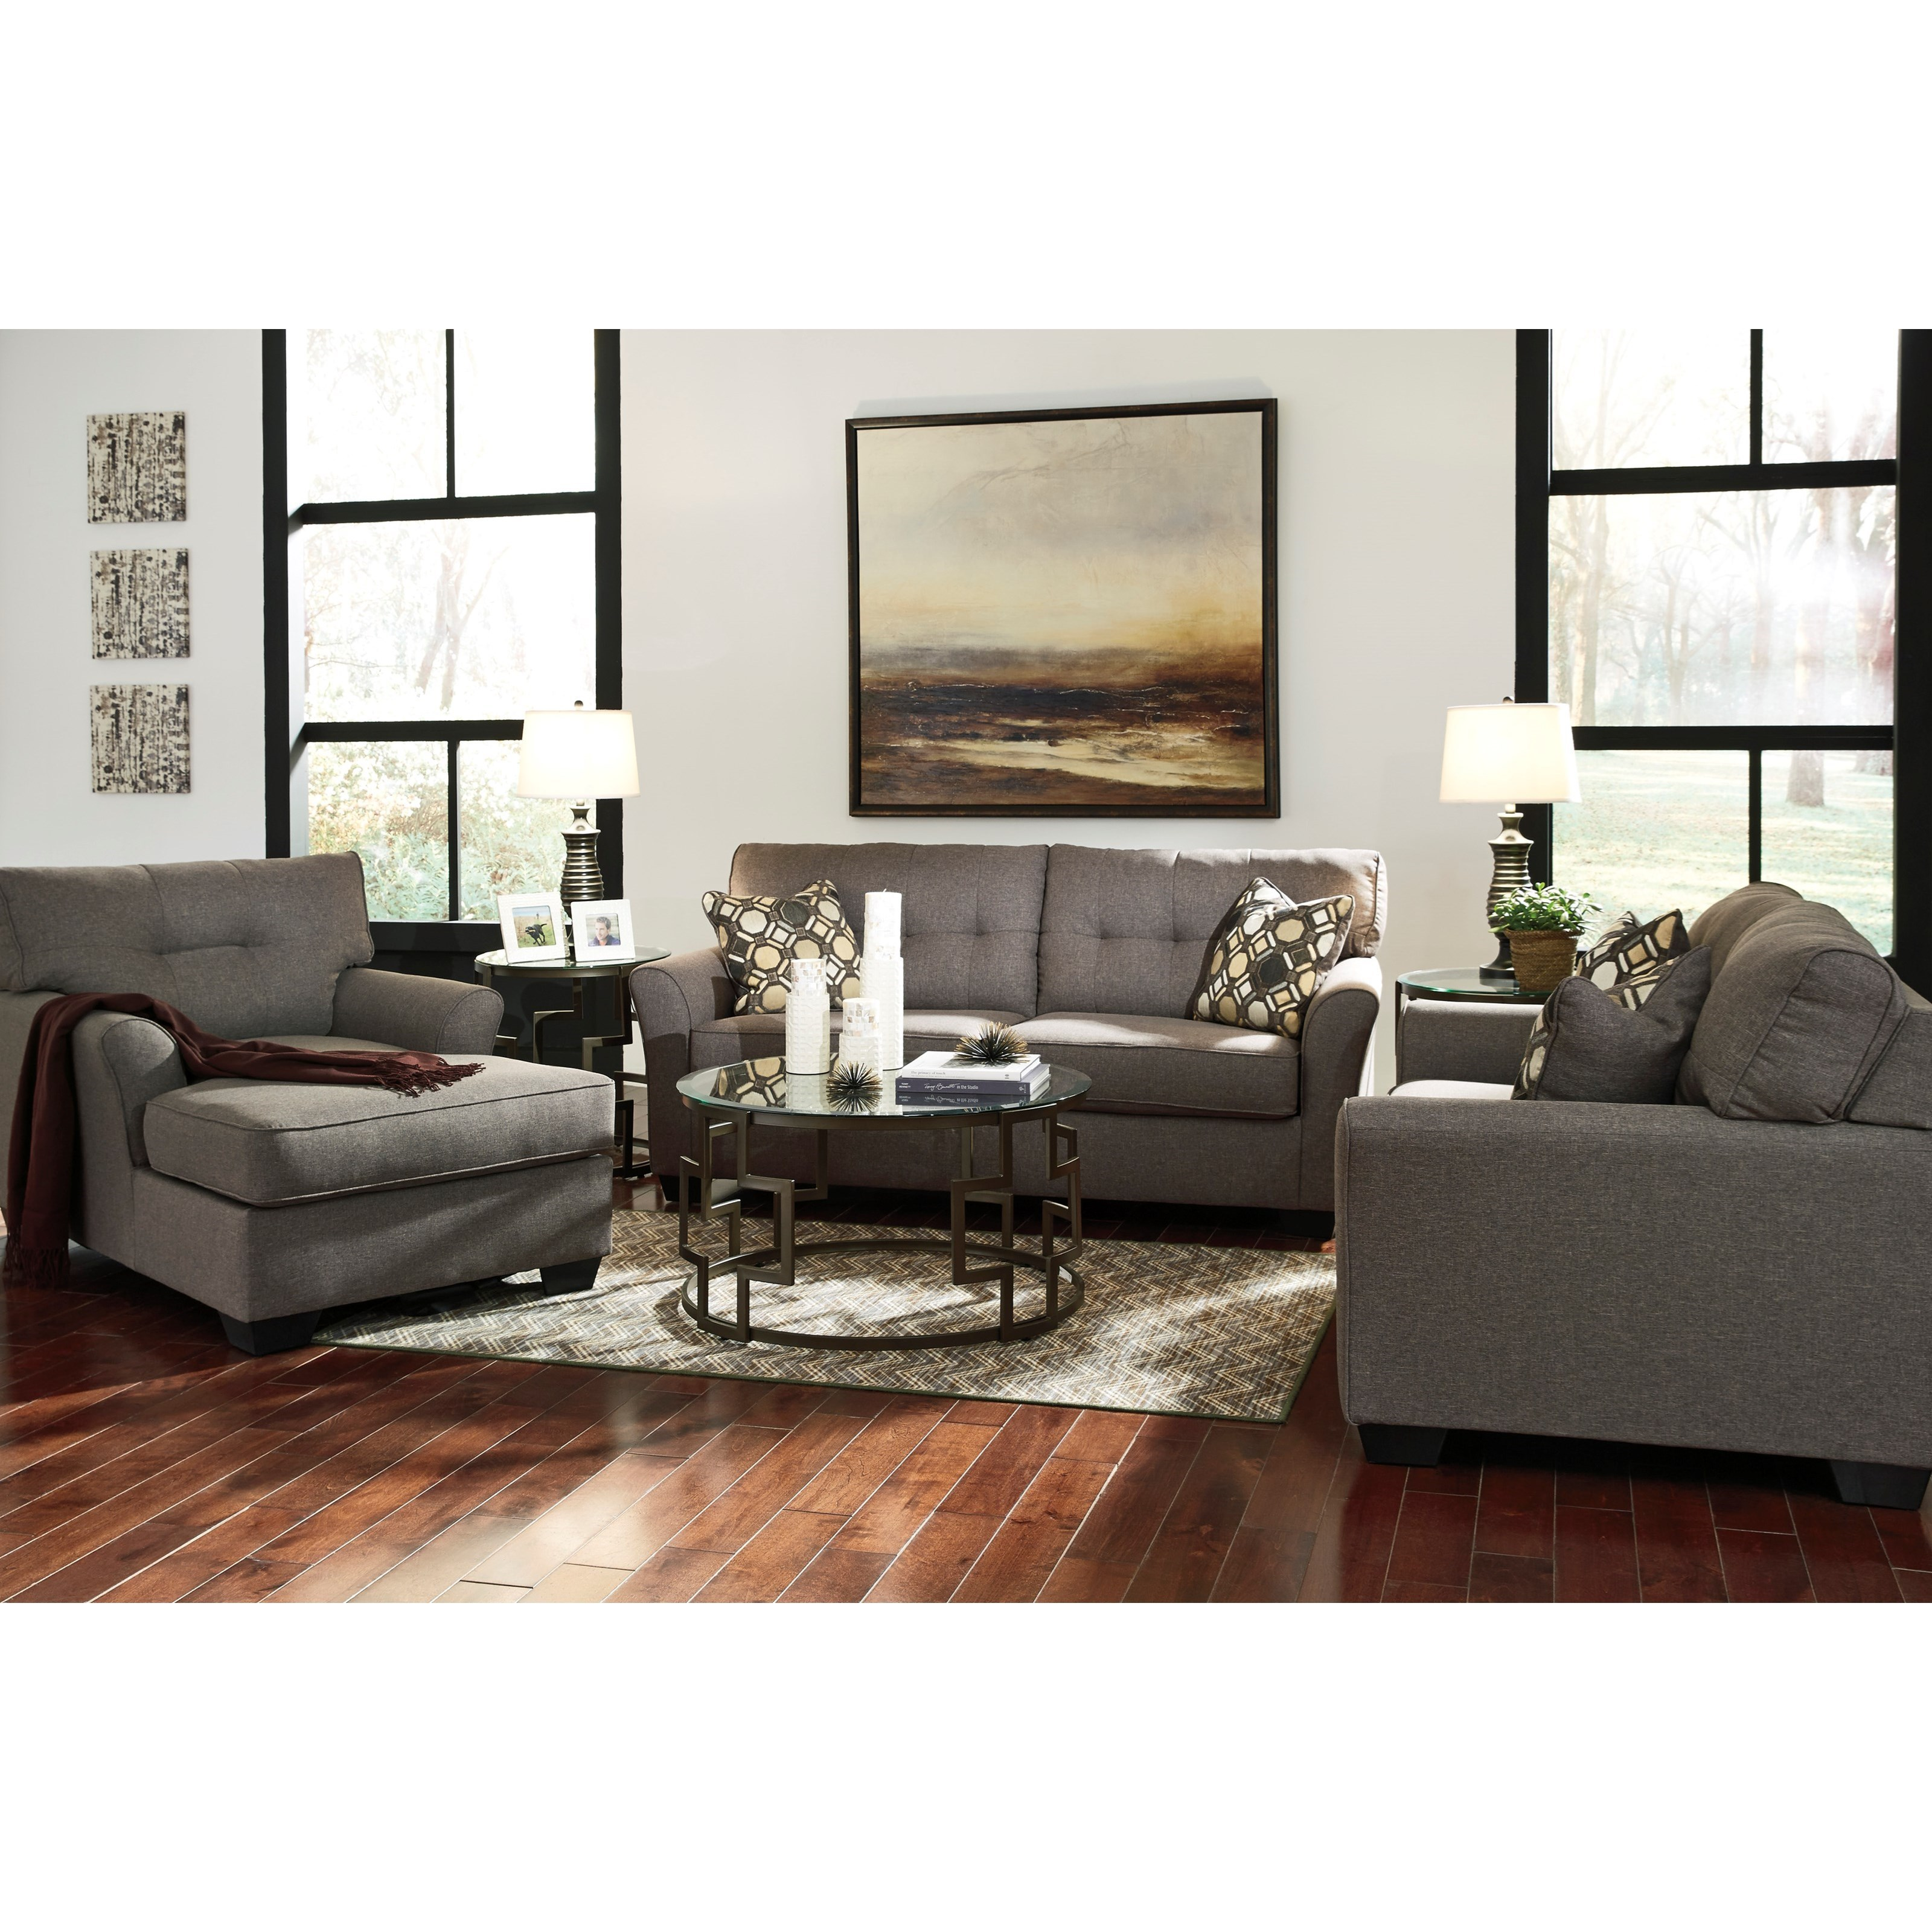 Tibbee Stationary Living Room Group by Signature Design by Ashley at Northeast Factory Direct